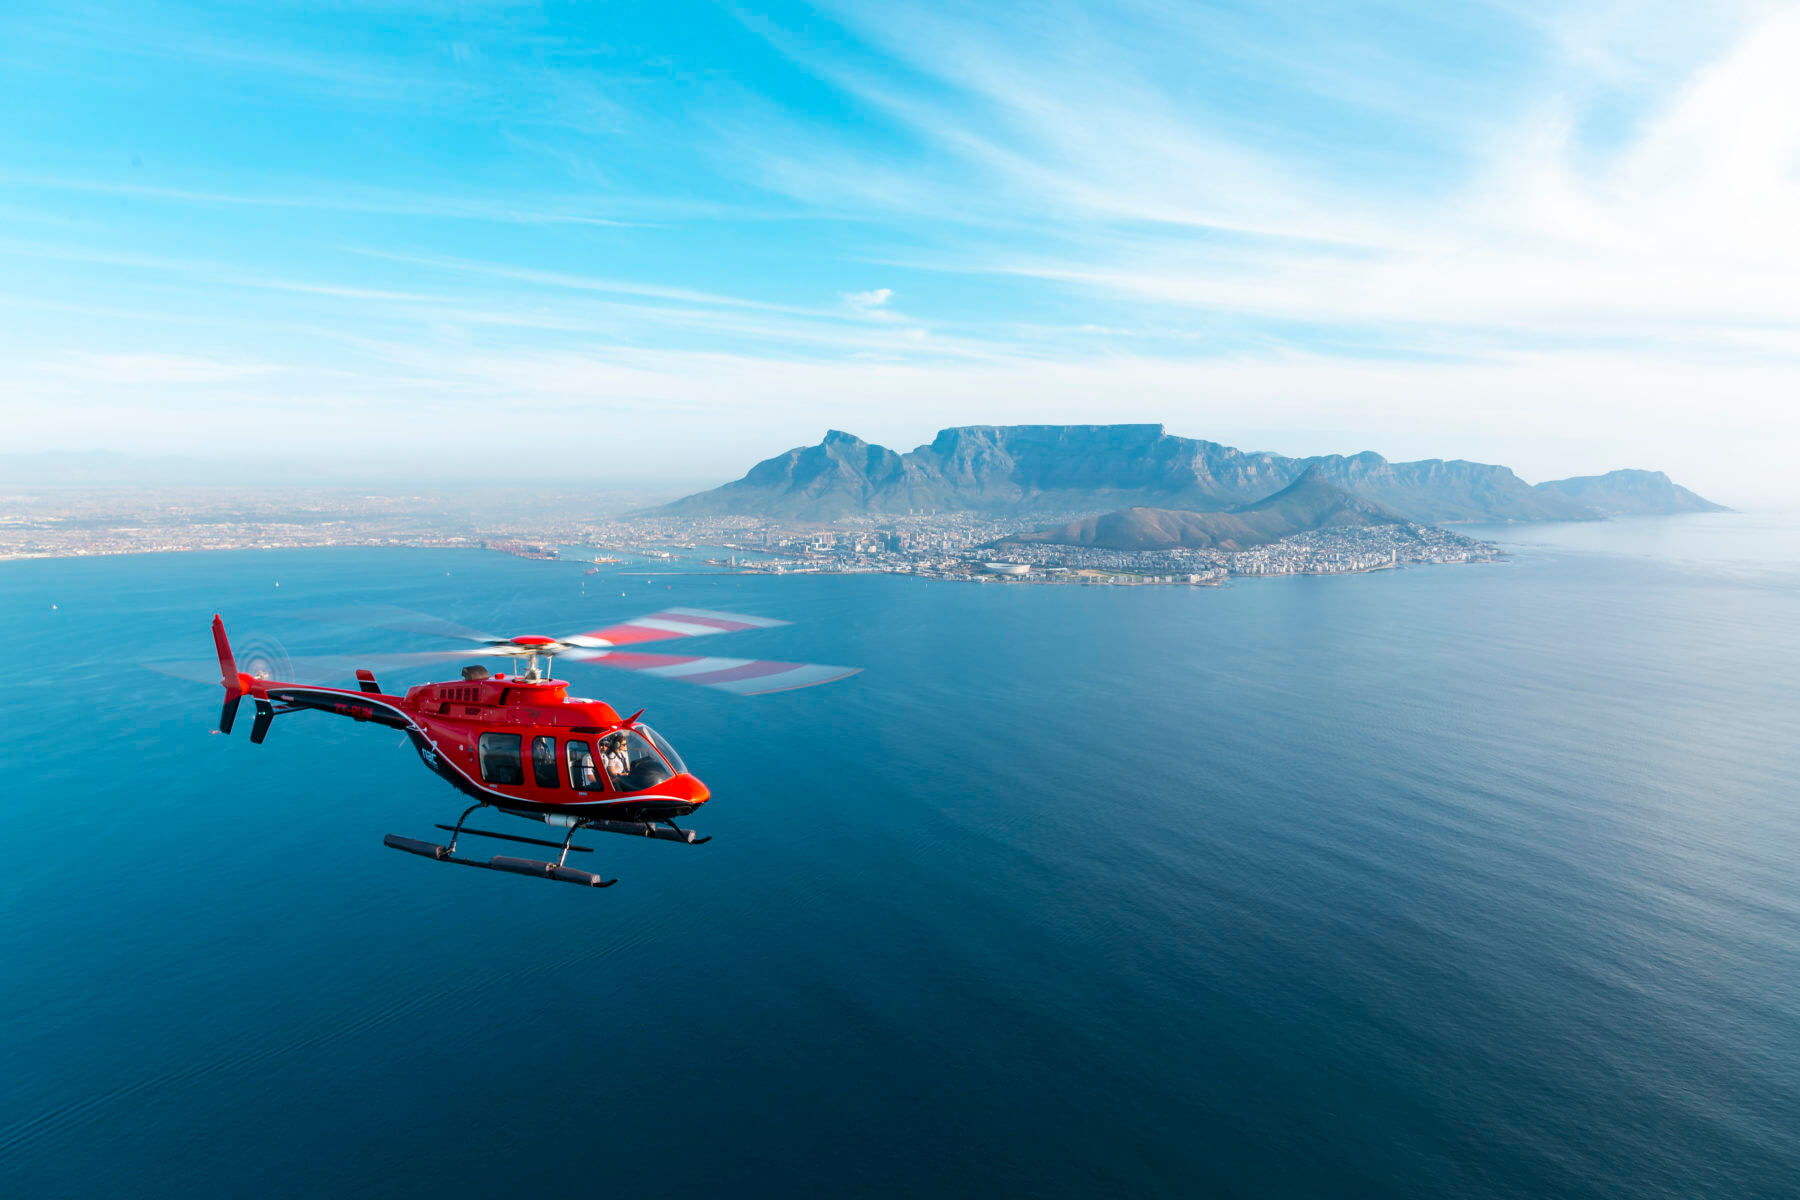 Book your Cape town helicopter tour